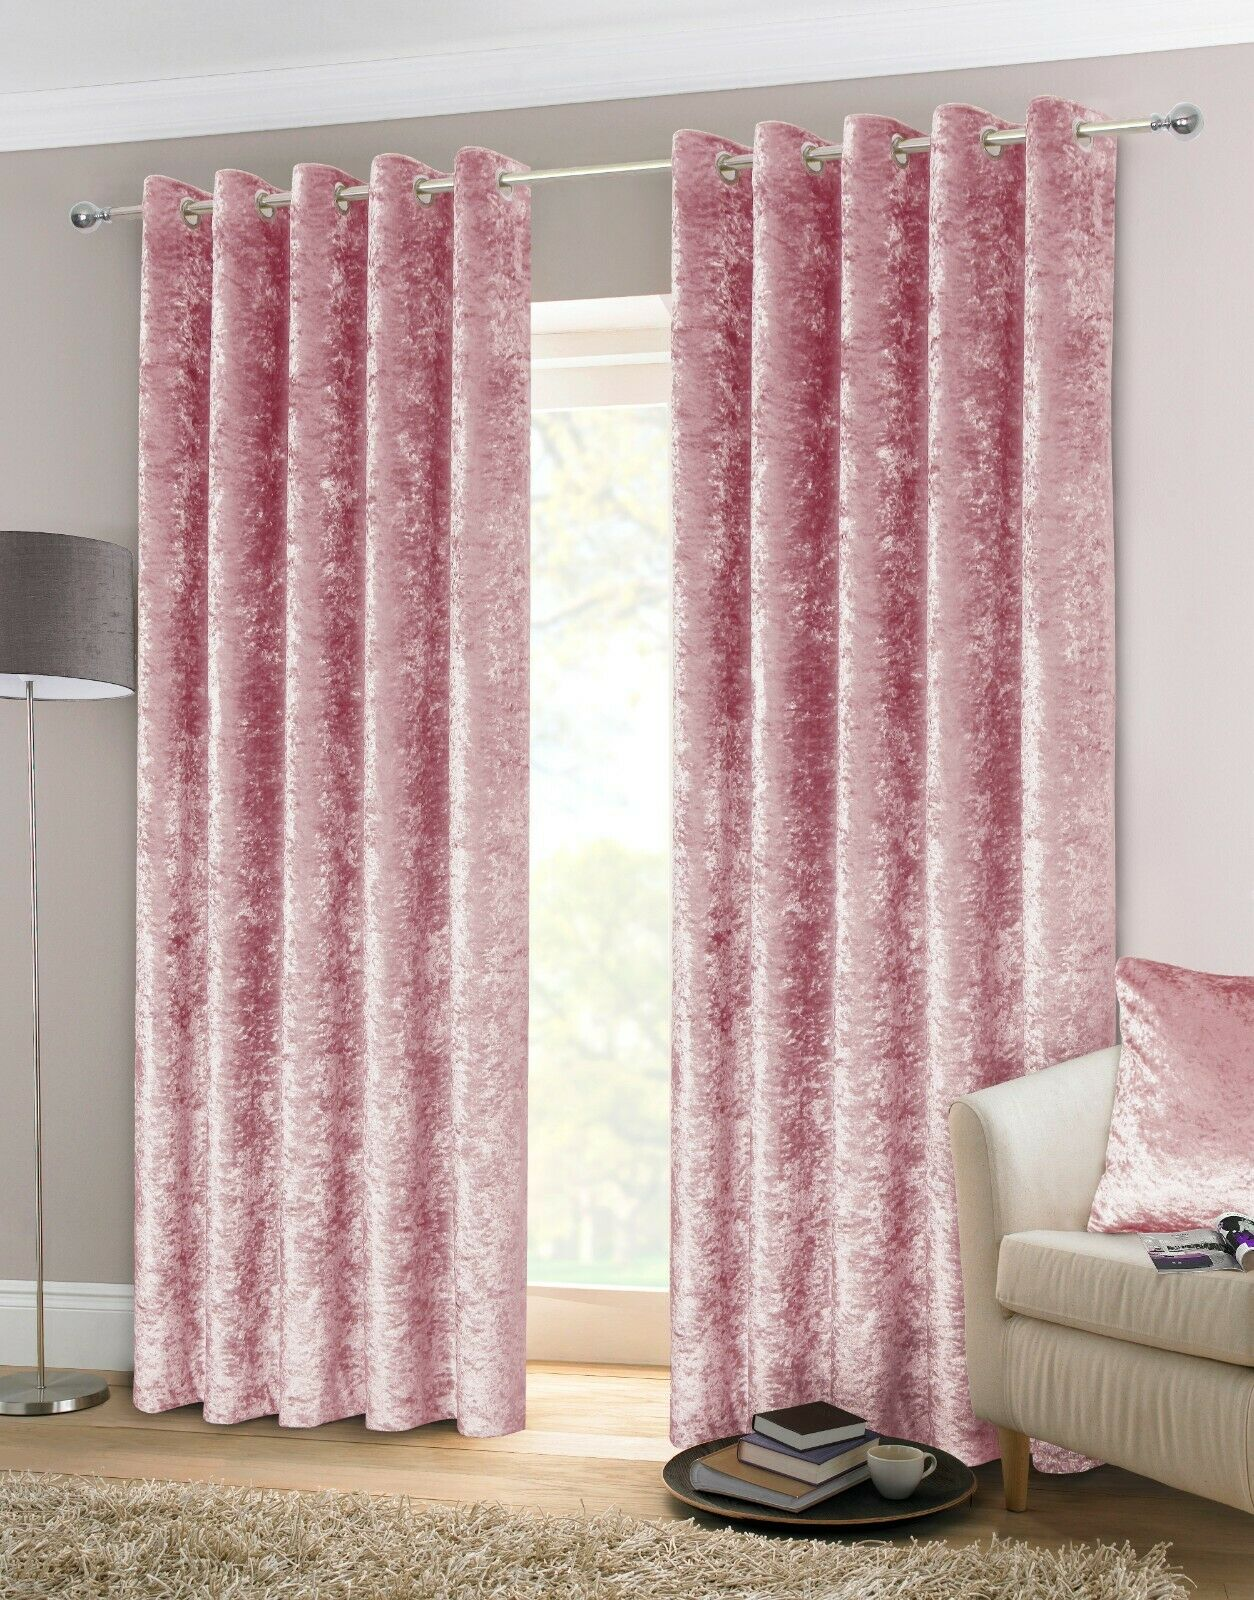 Rapport Luxury Heavy Weight Fully Lined Crushed Velvet Curtains Eyelet Blush Bb Textiles Bb Textiles